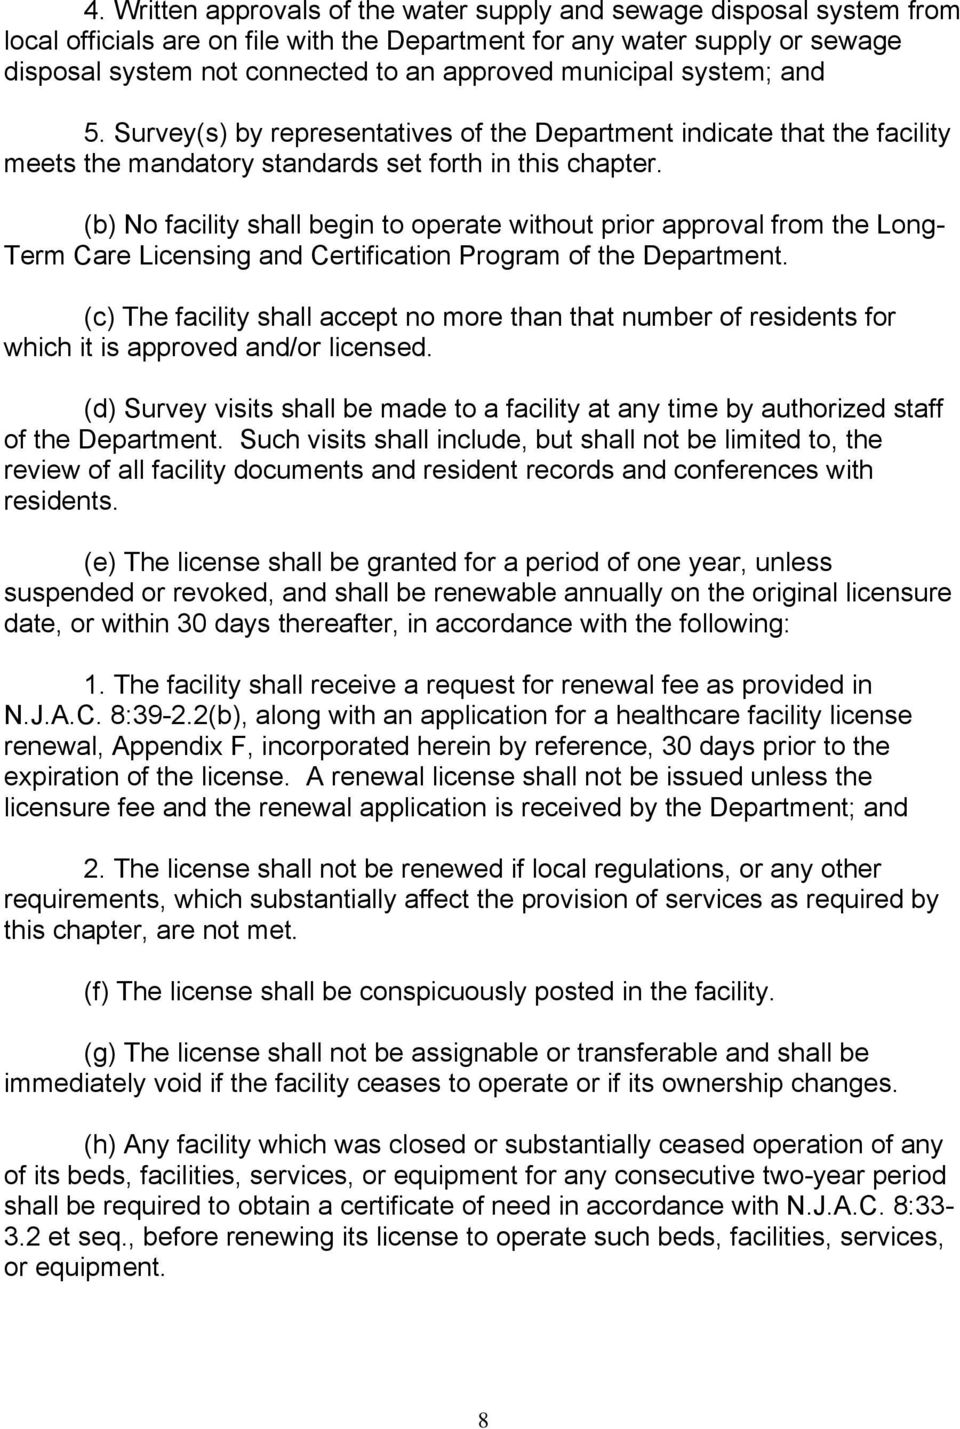 (b) No facility shall begin to operate without prior approval from the Long- Term Care Licensing and Certification Program of the Department.